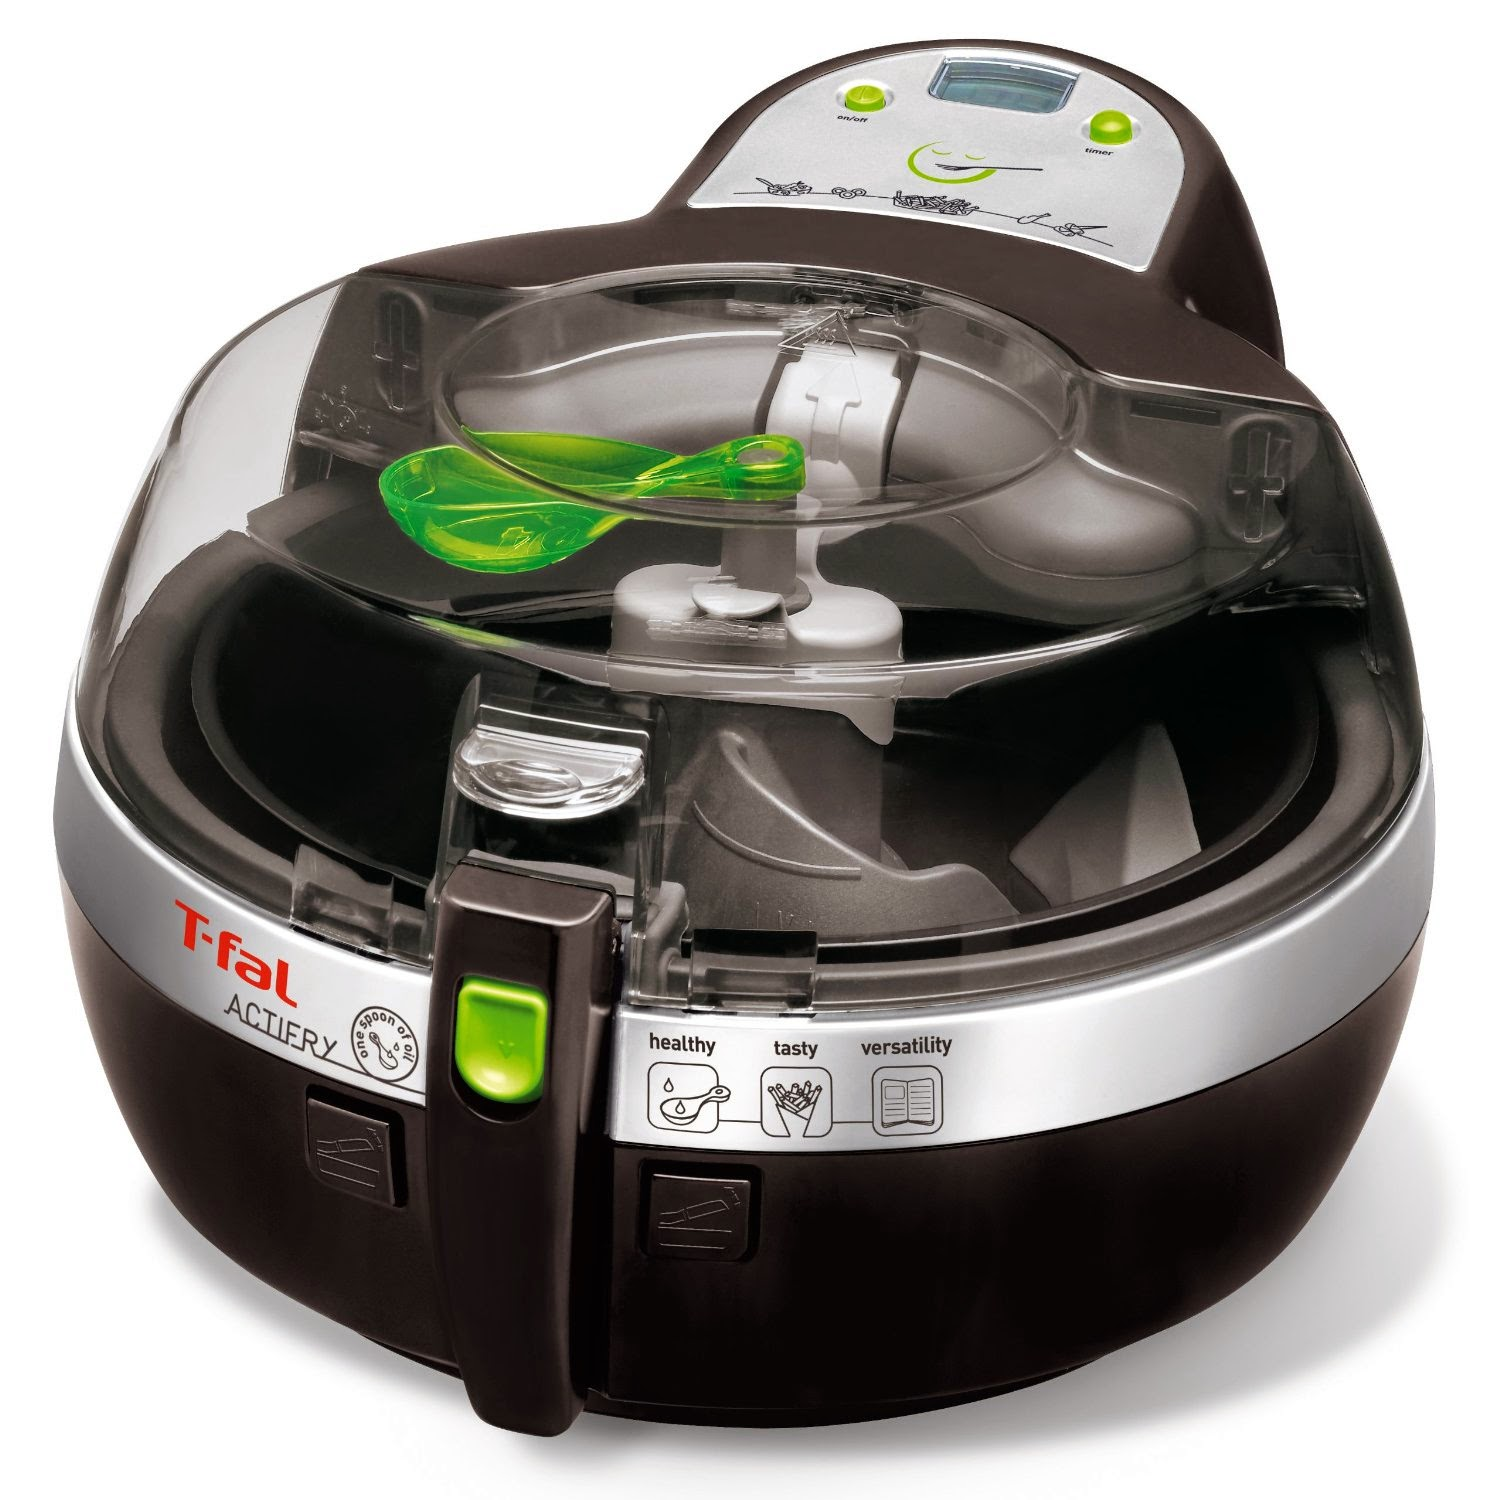 T-fal FZ700251 ActiFry Low-Fat Healthy Multi-Cooker, picture, review features & specifications